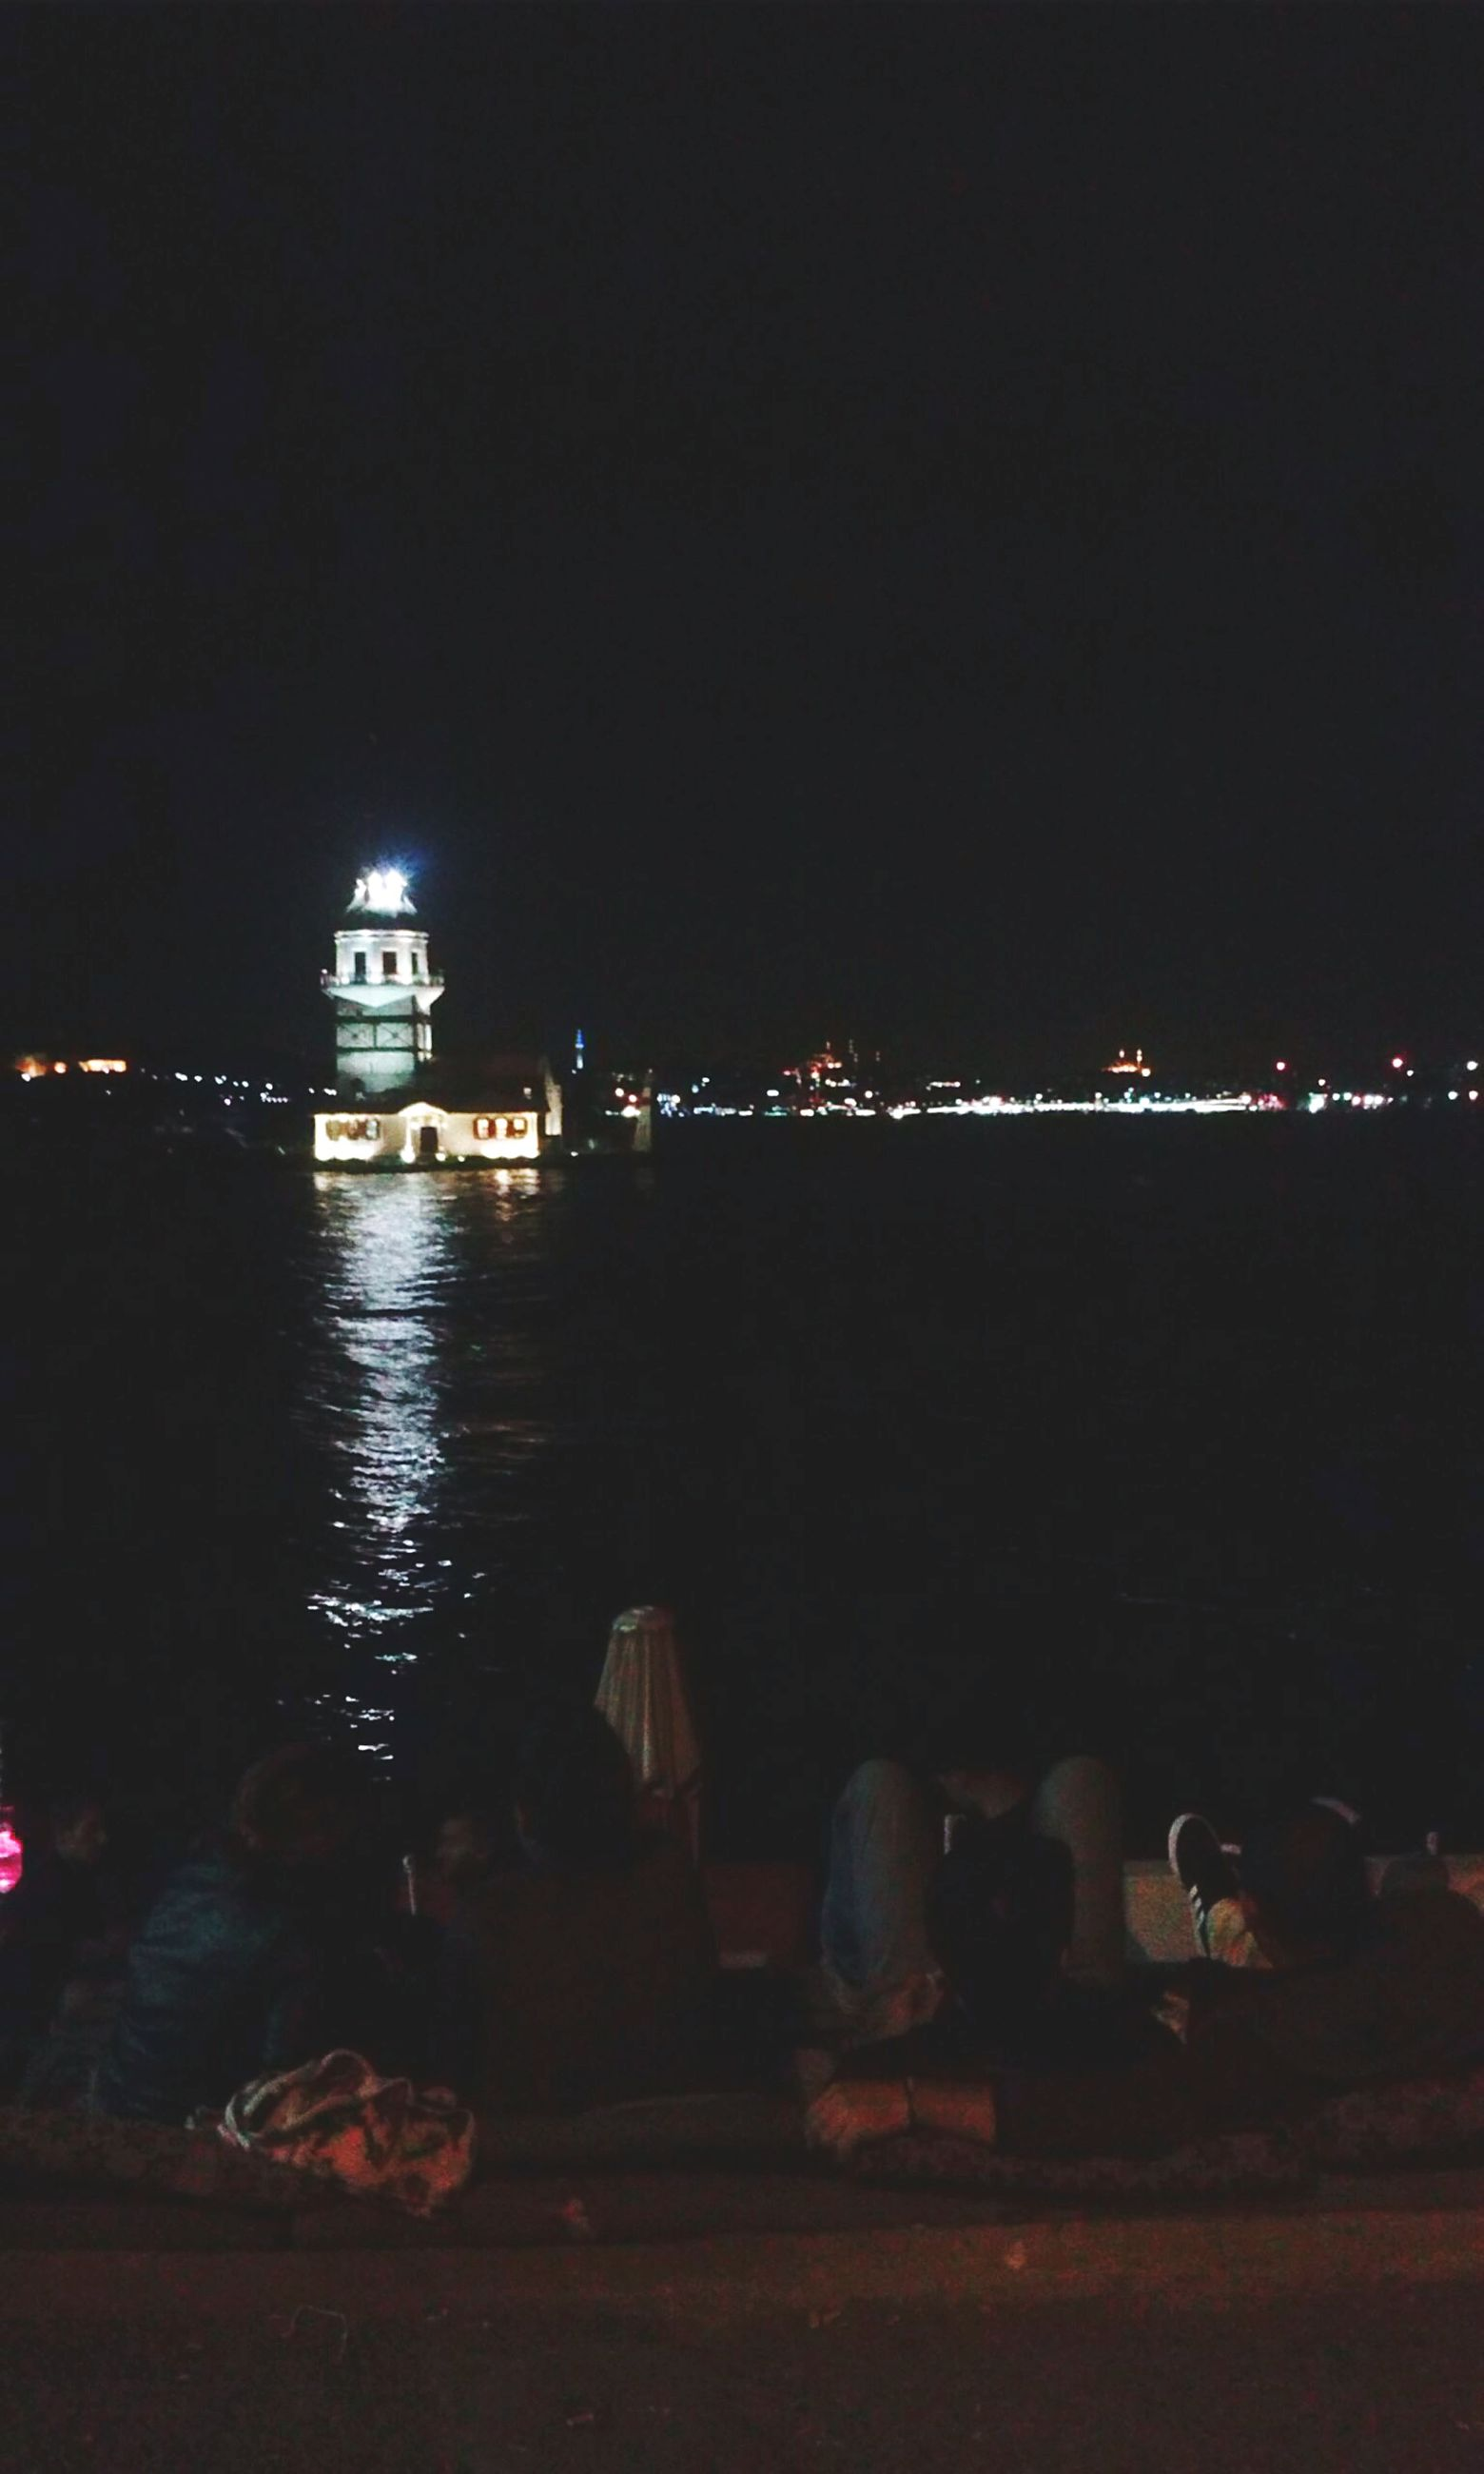 night, illuminated, water, copy space, sea, built structure, dark, building exterior, architecture, men, sky, lifestyles, clear sky, city, leisure activity, outdoors, river, reflection, lighting equipment